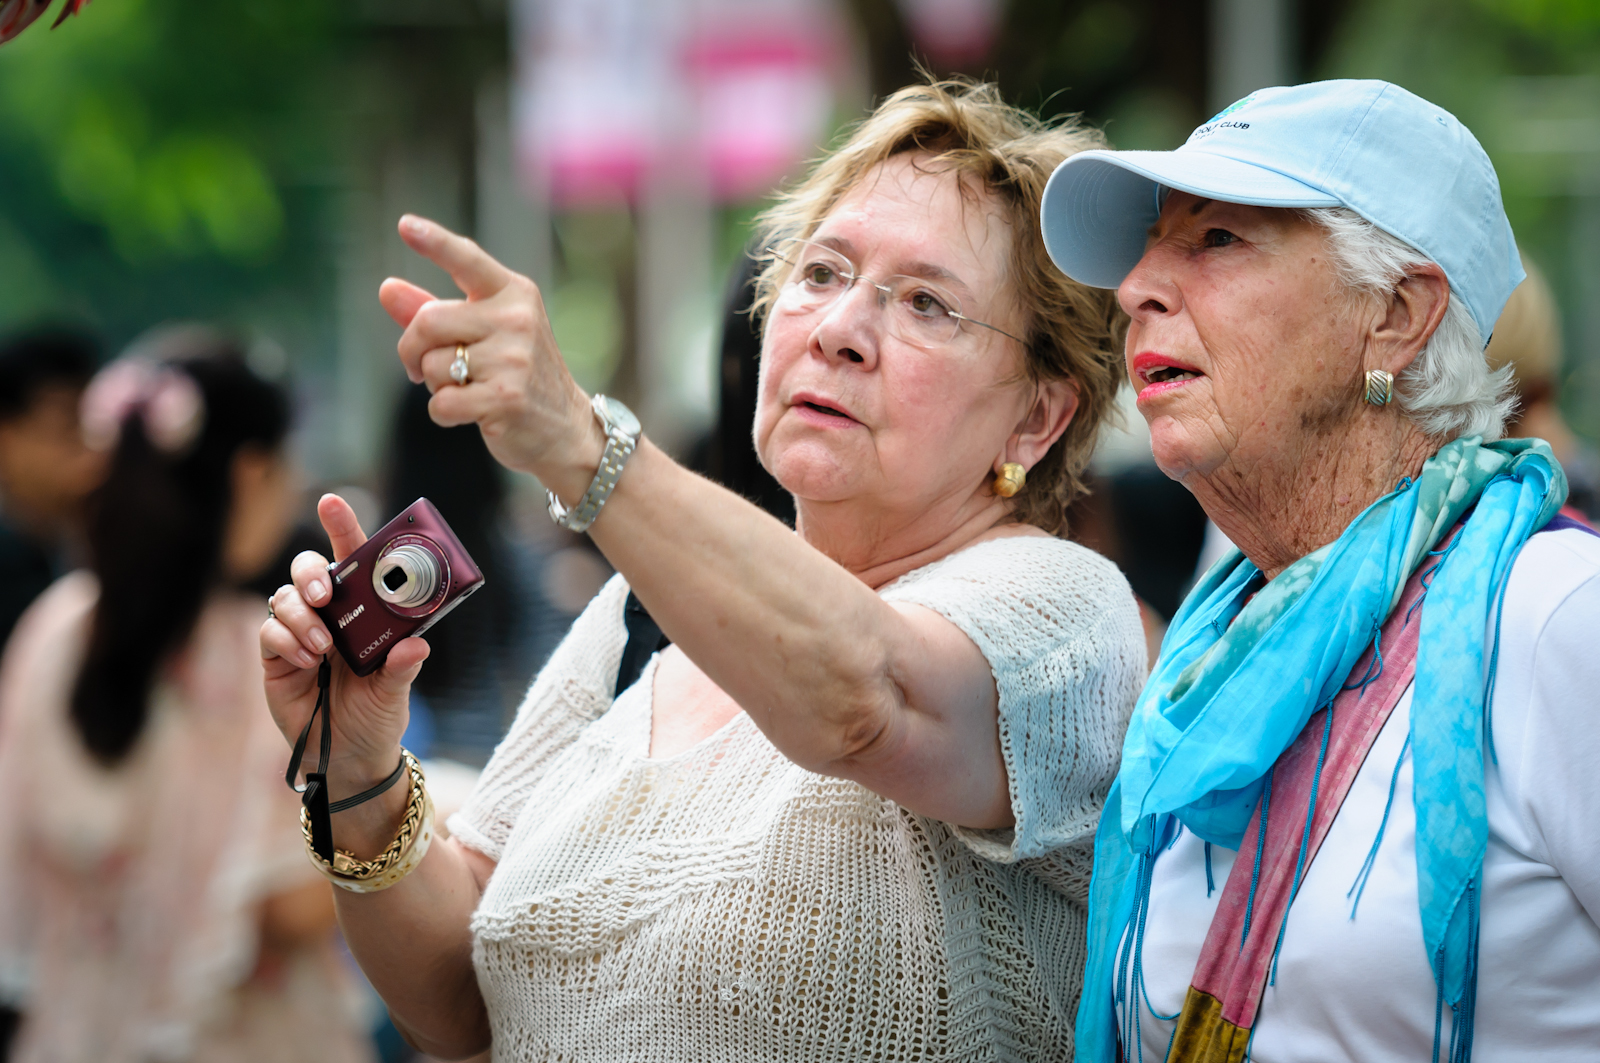 Street photography - Tourists looking at notable landmarks in Singapore